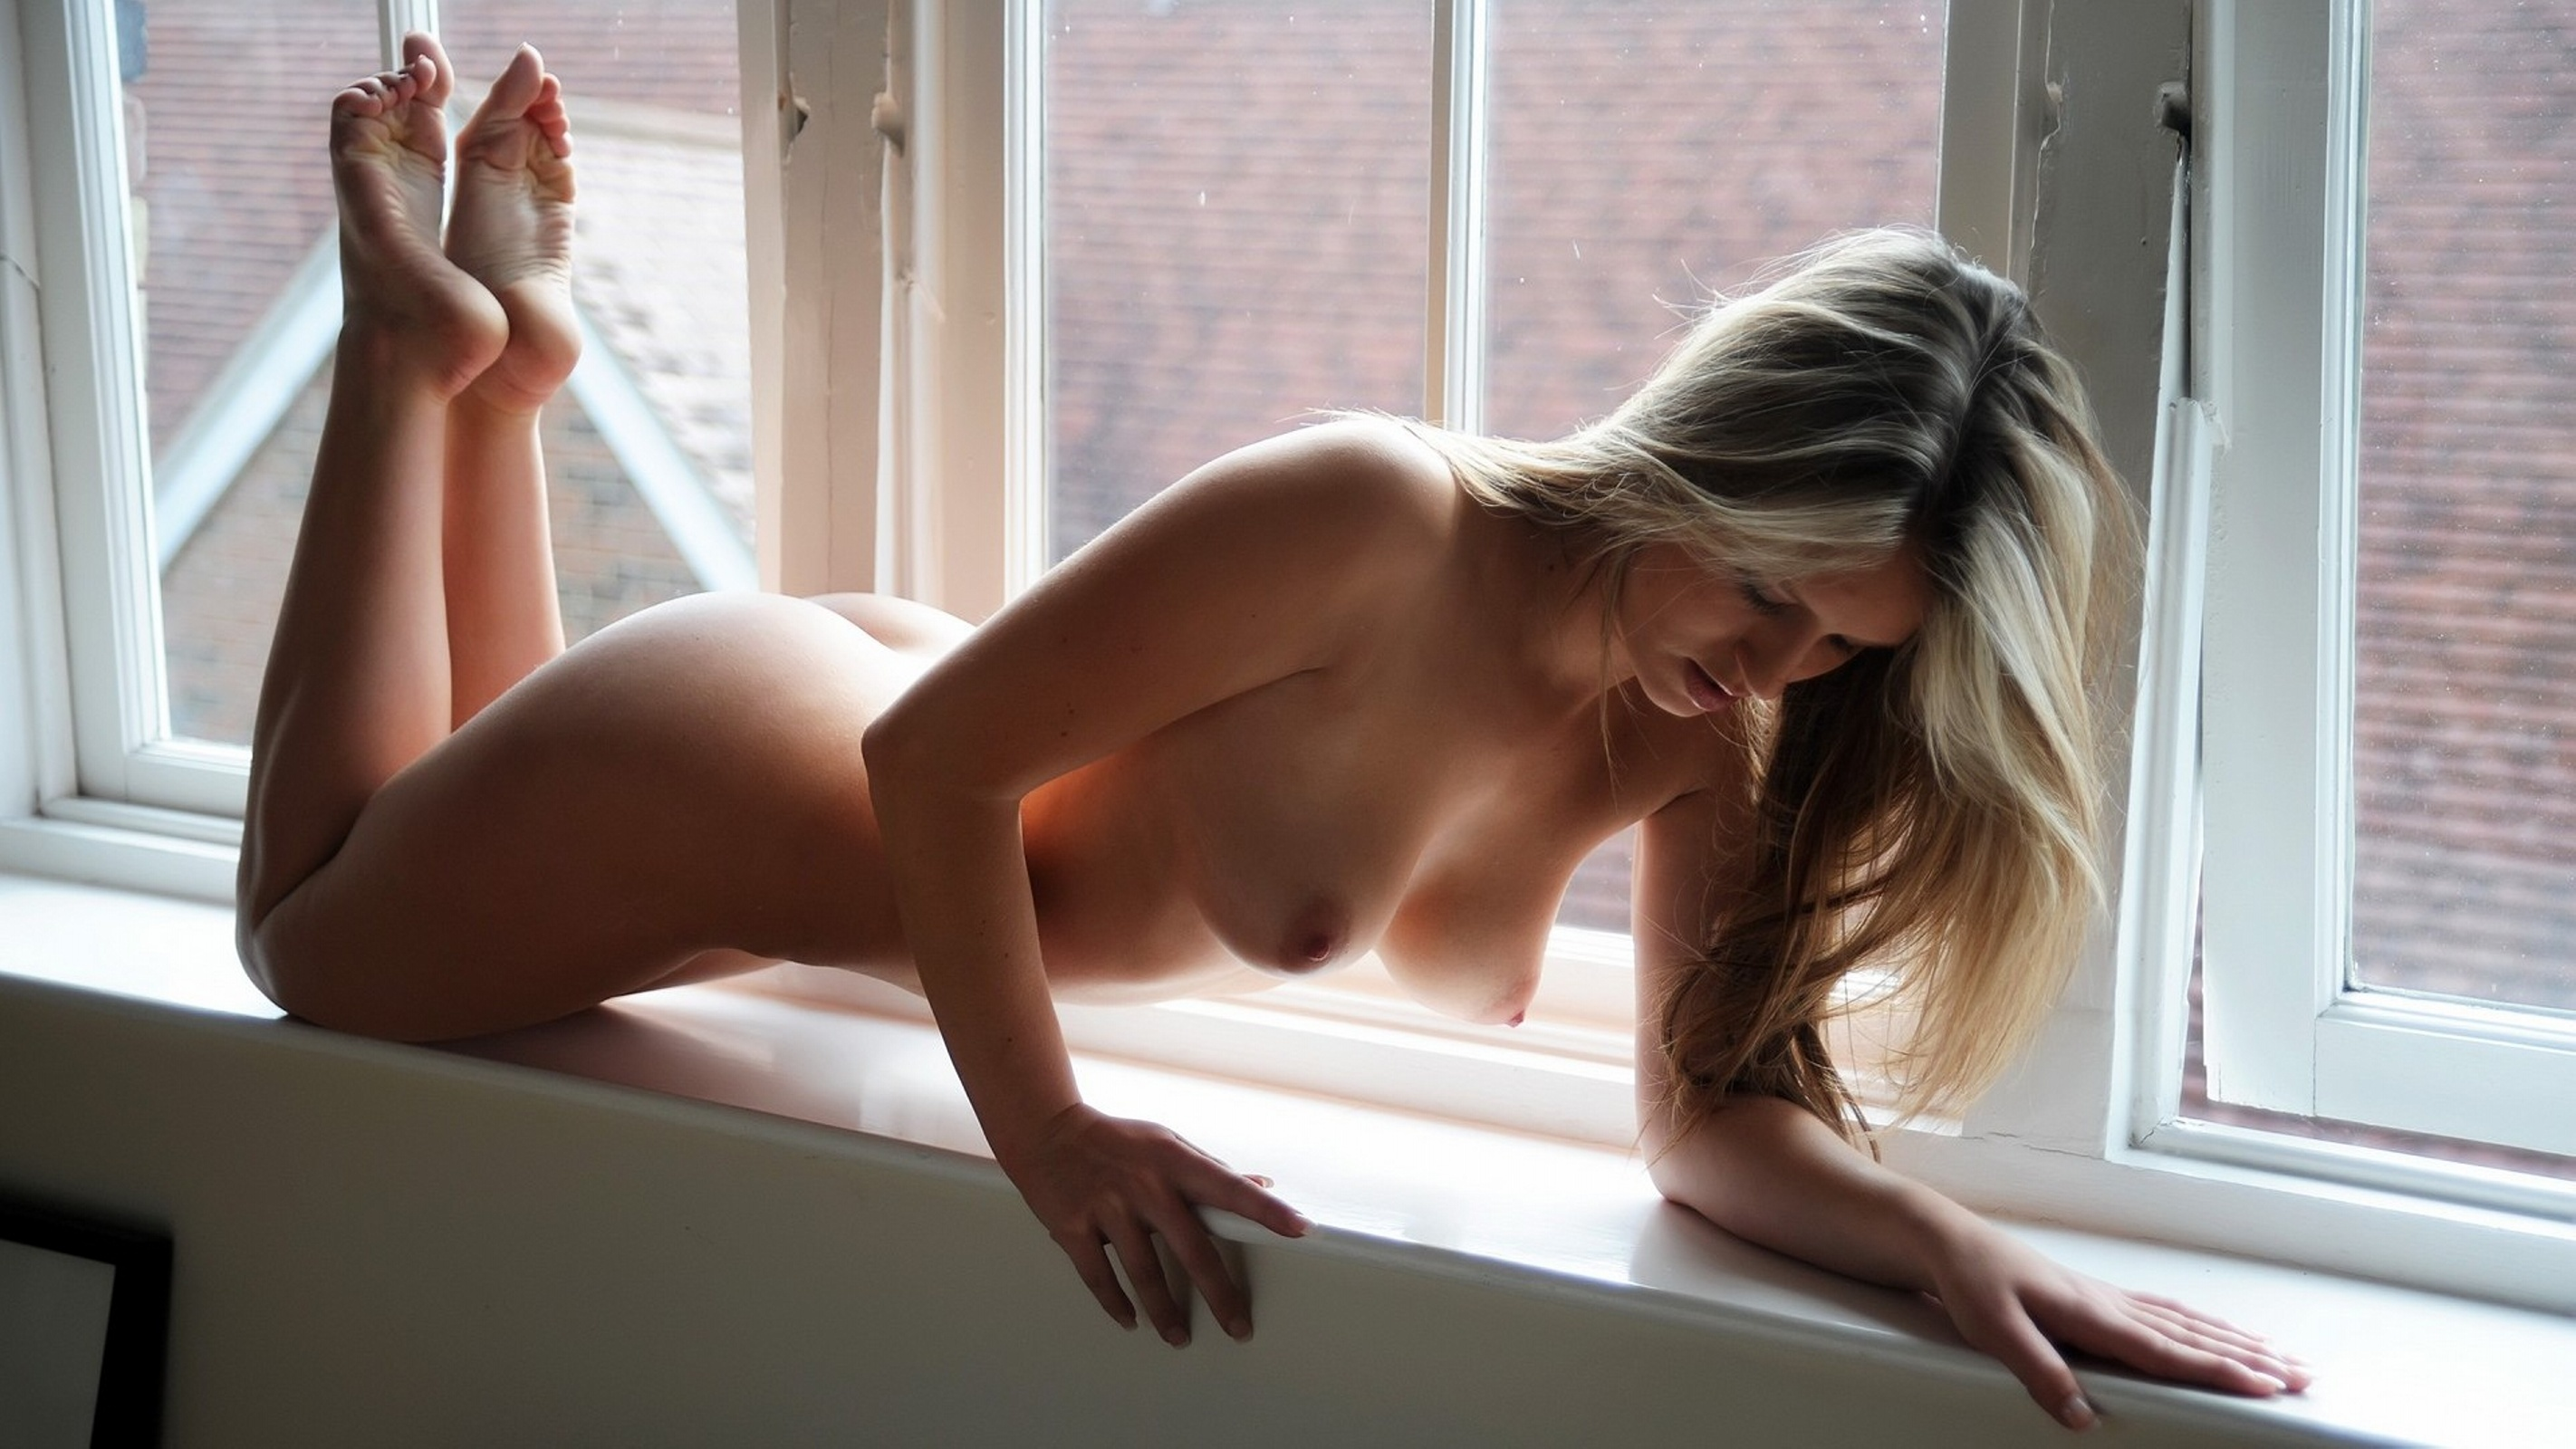 Nude girl in window excellent idea